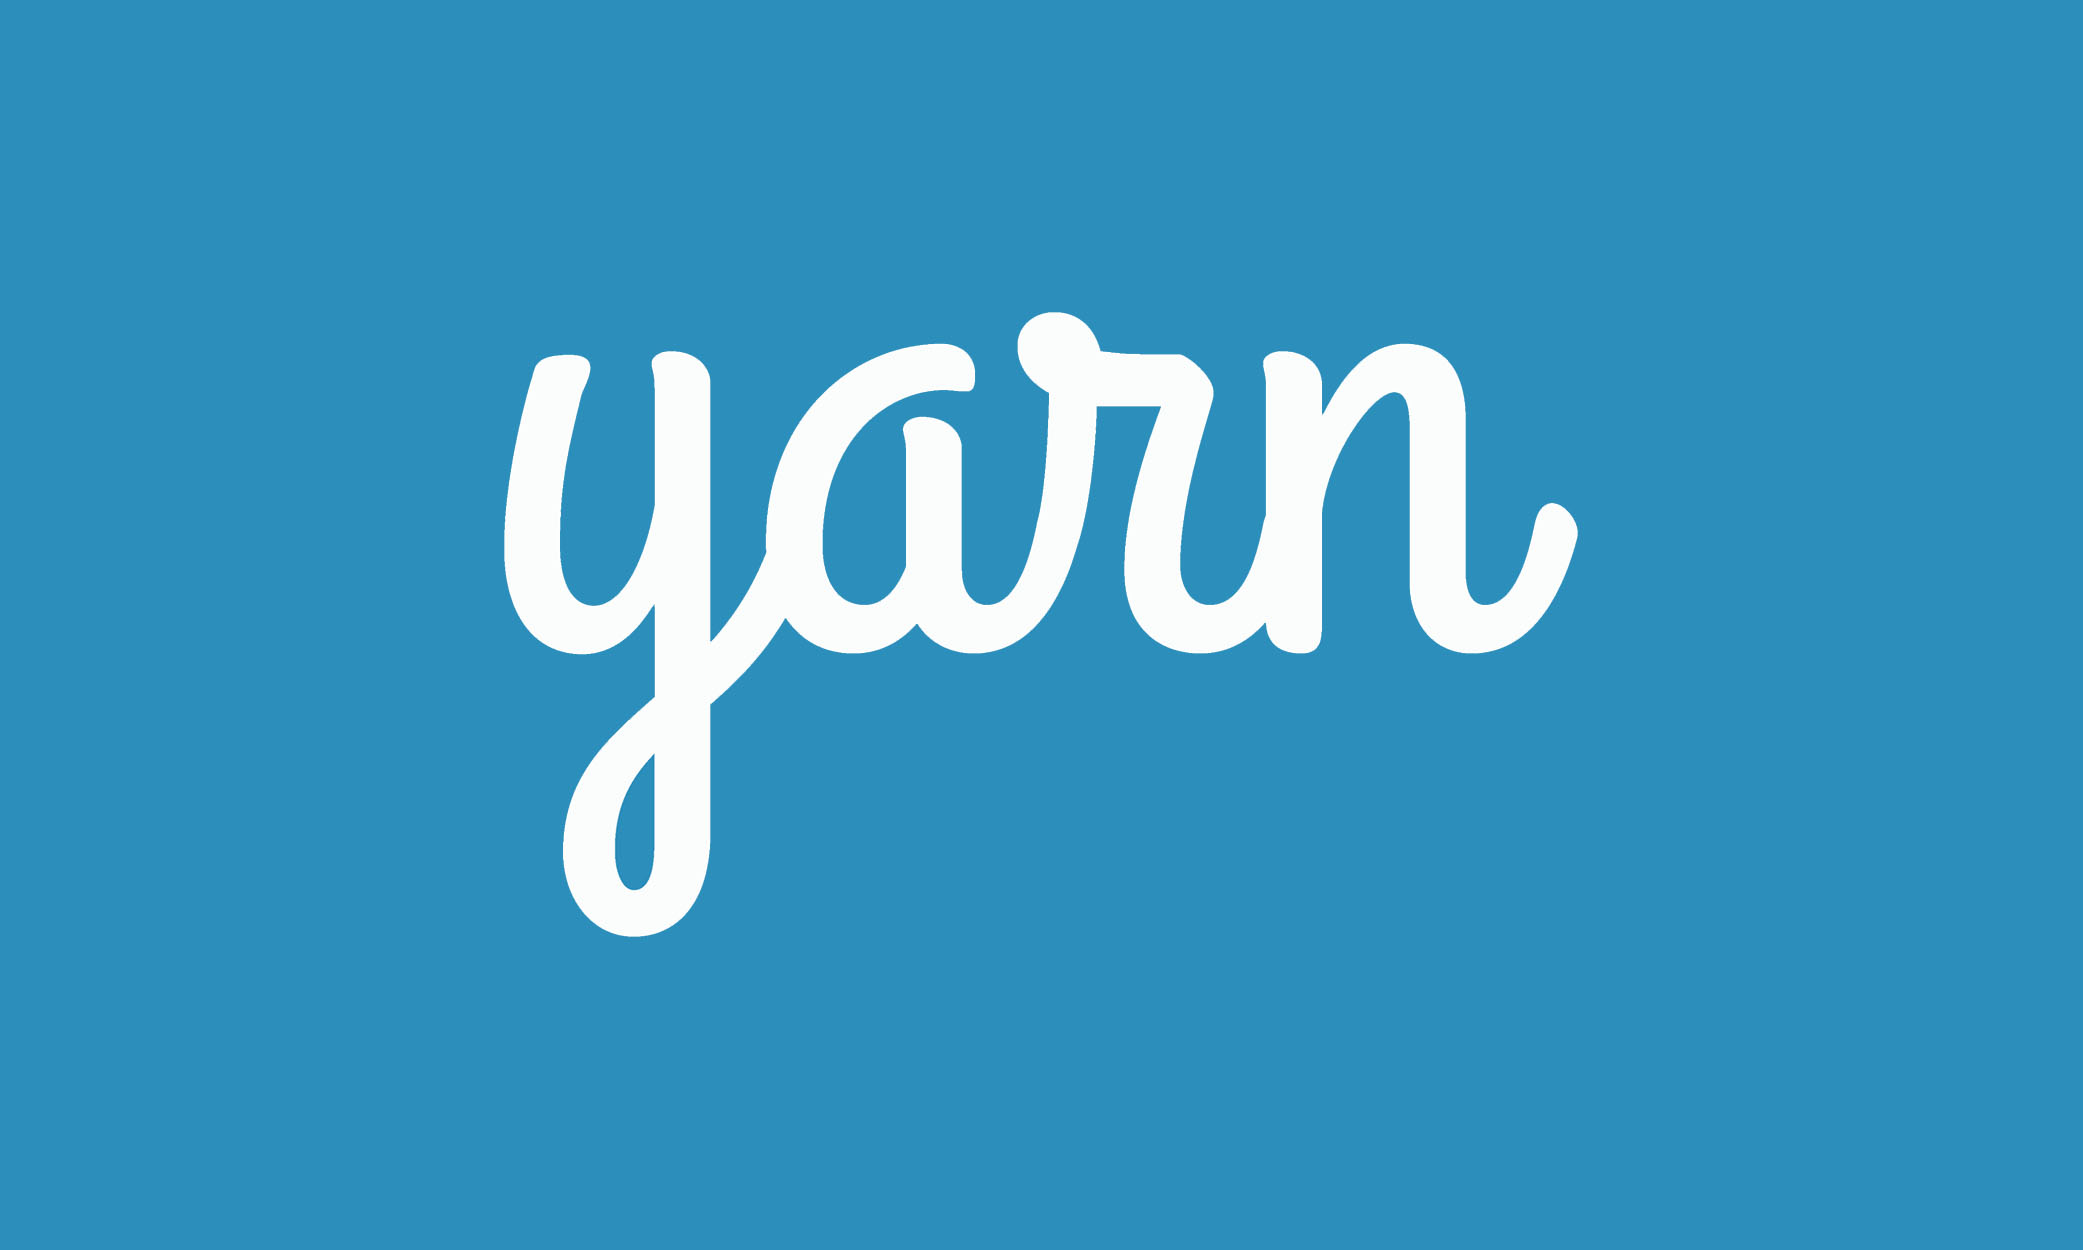 Yarn: A new package manager for JavaScript - Facebook